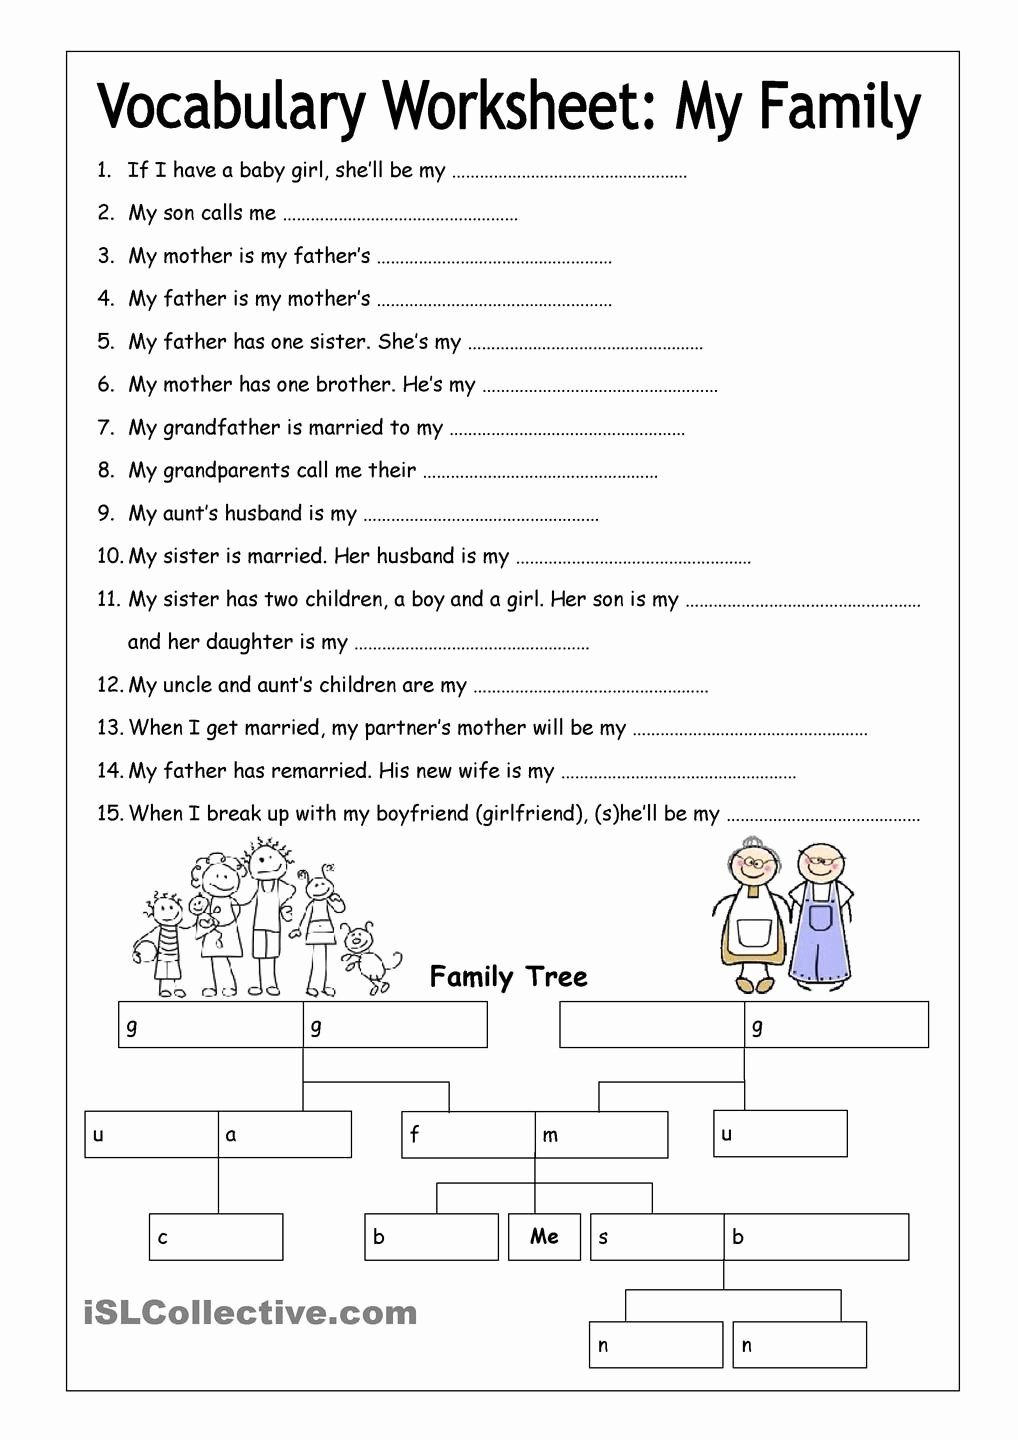 Family Tree Worksheet Printable Lovely Vocabulary Worksheet My Family Medium